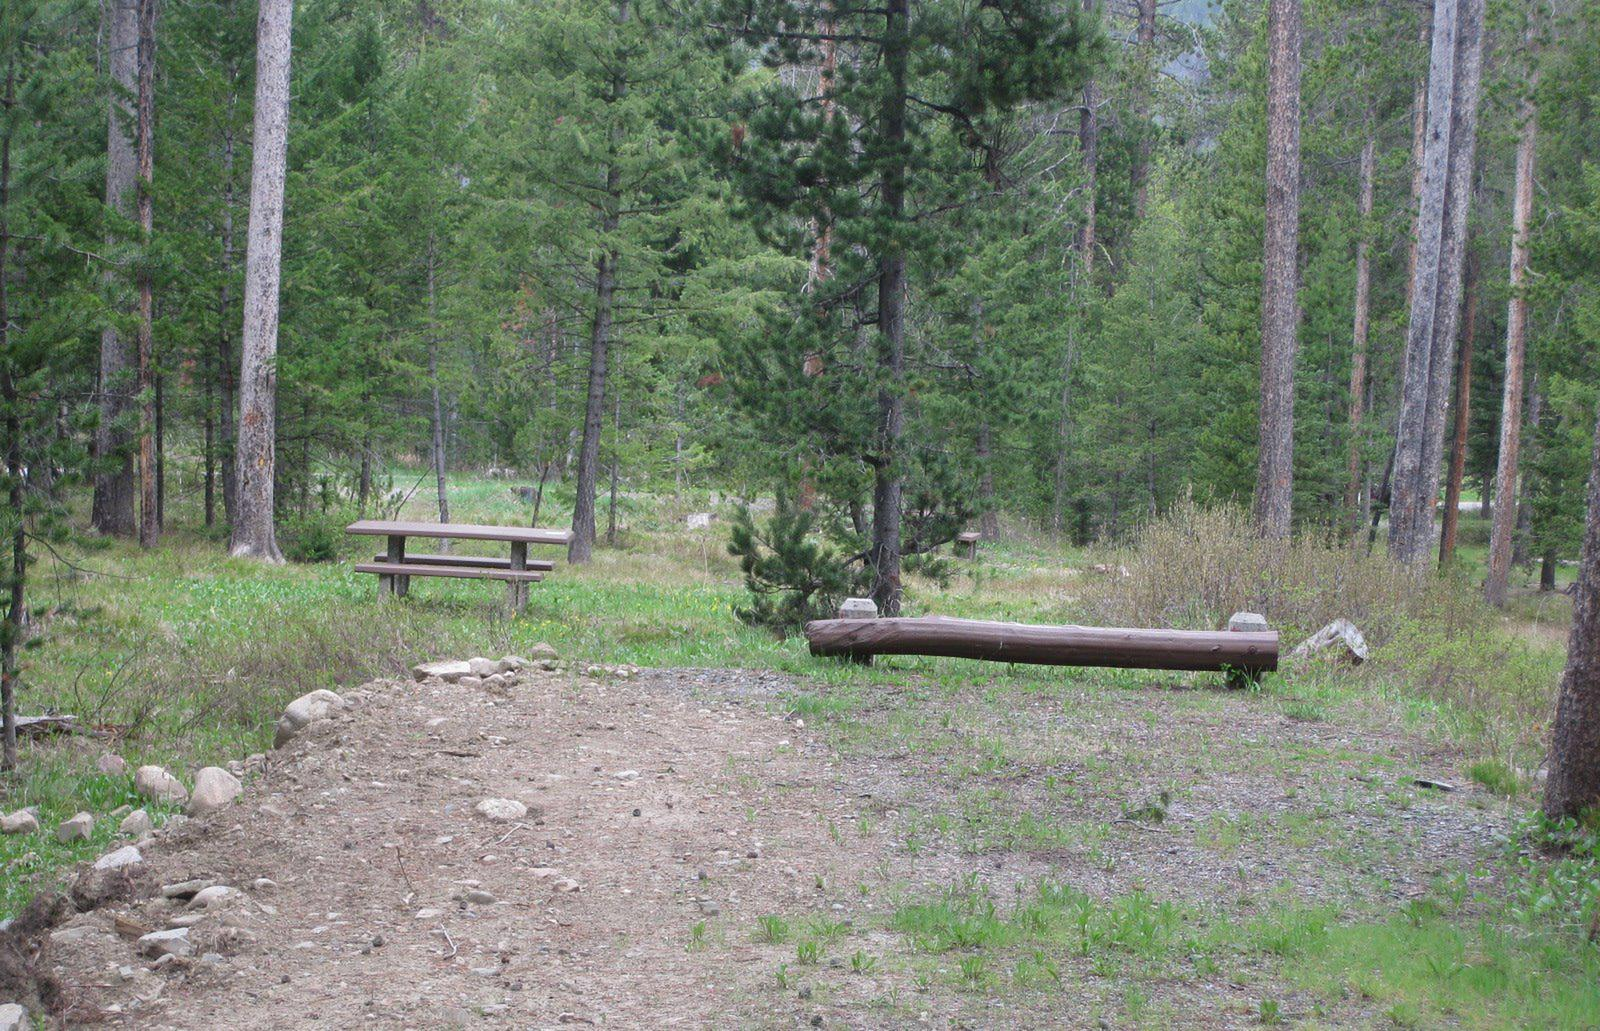 Site C22, campsite surrounded by pine trees, picnic table & fire ringSite C22